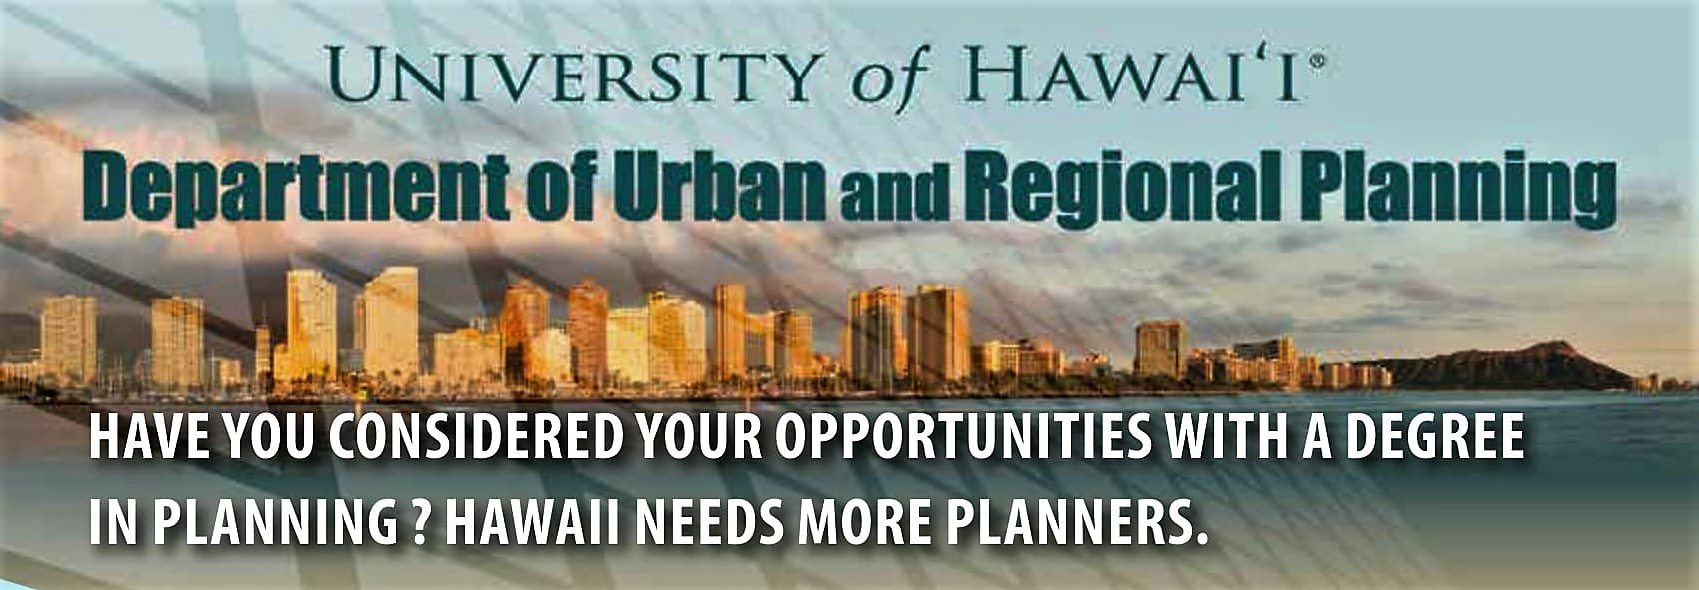 Illustration saying Department of Urban and Regional Planning, Hawaii needs more planners